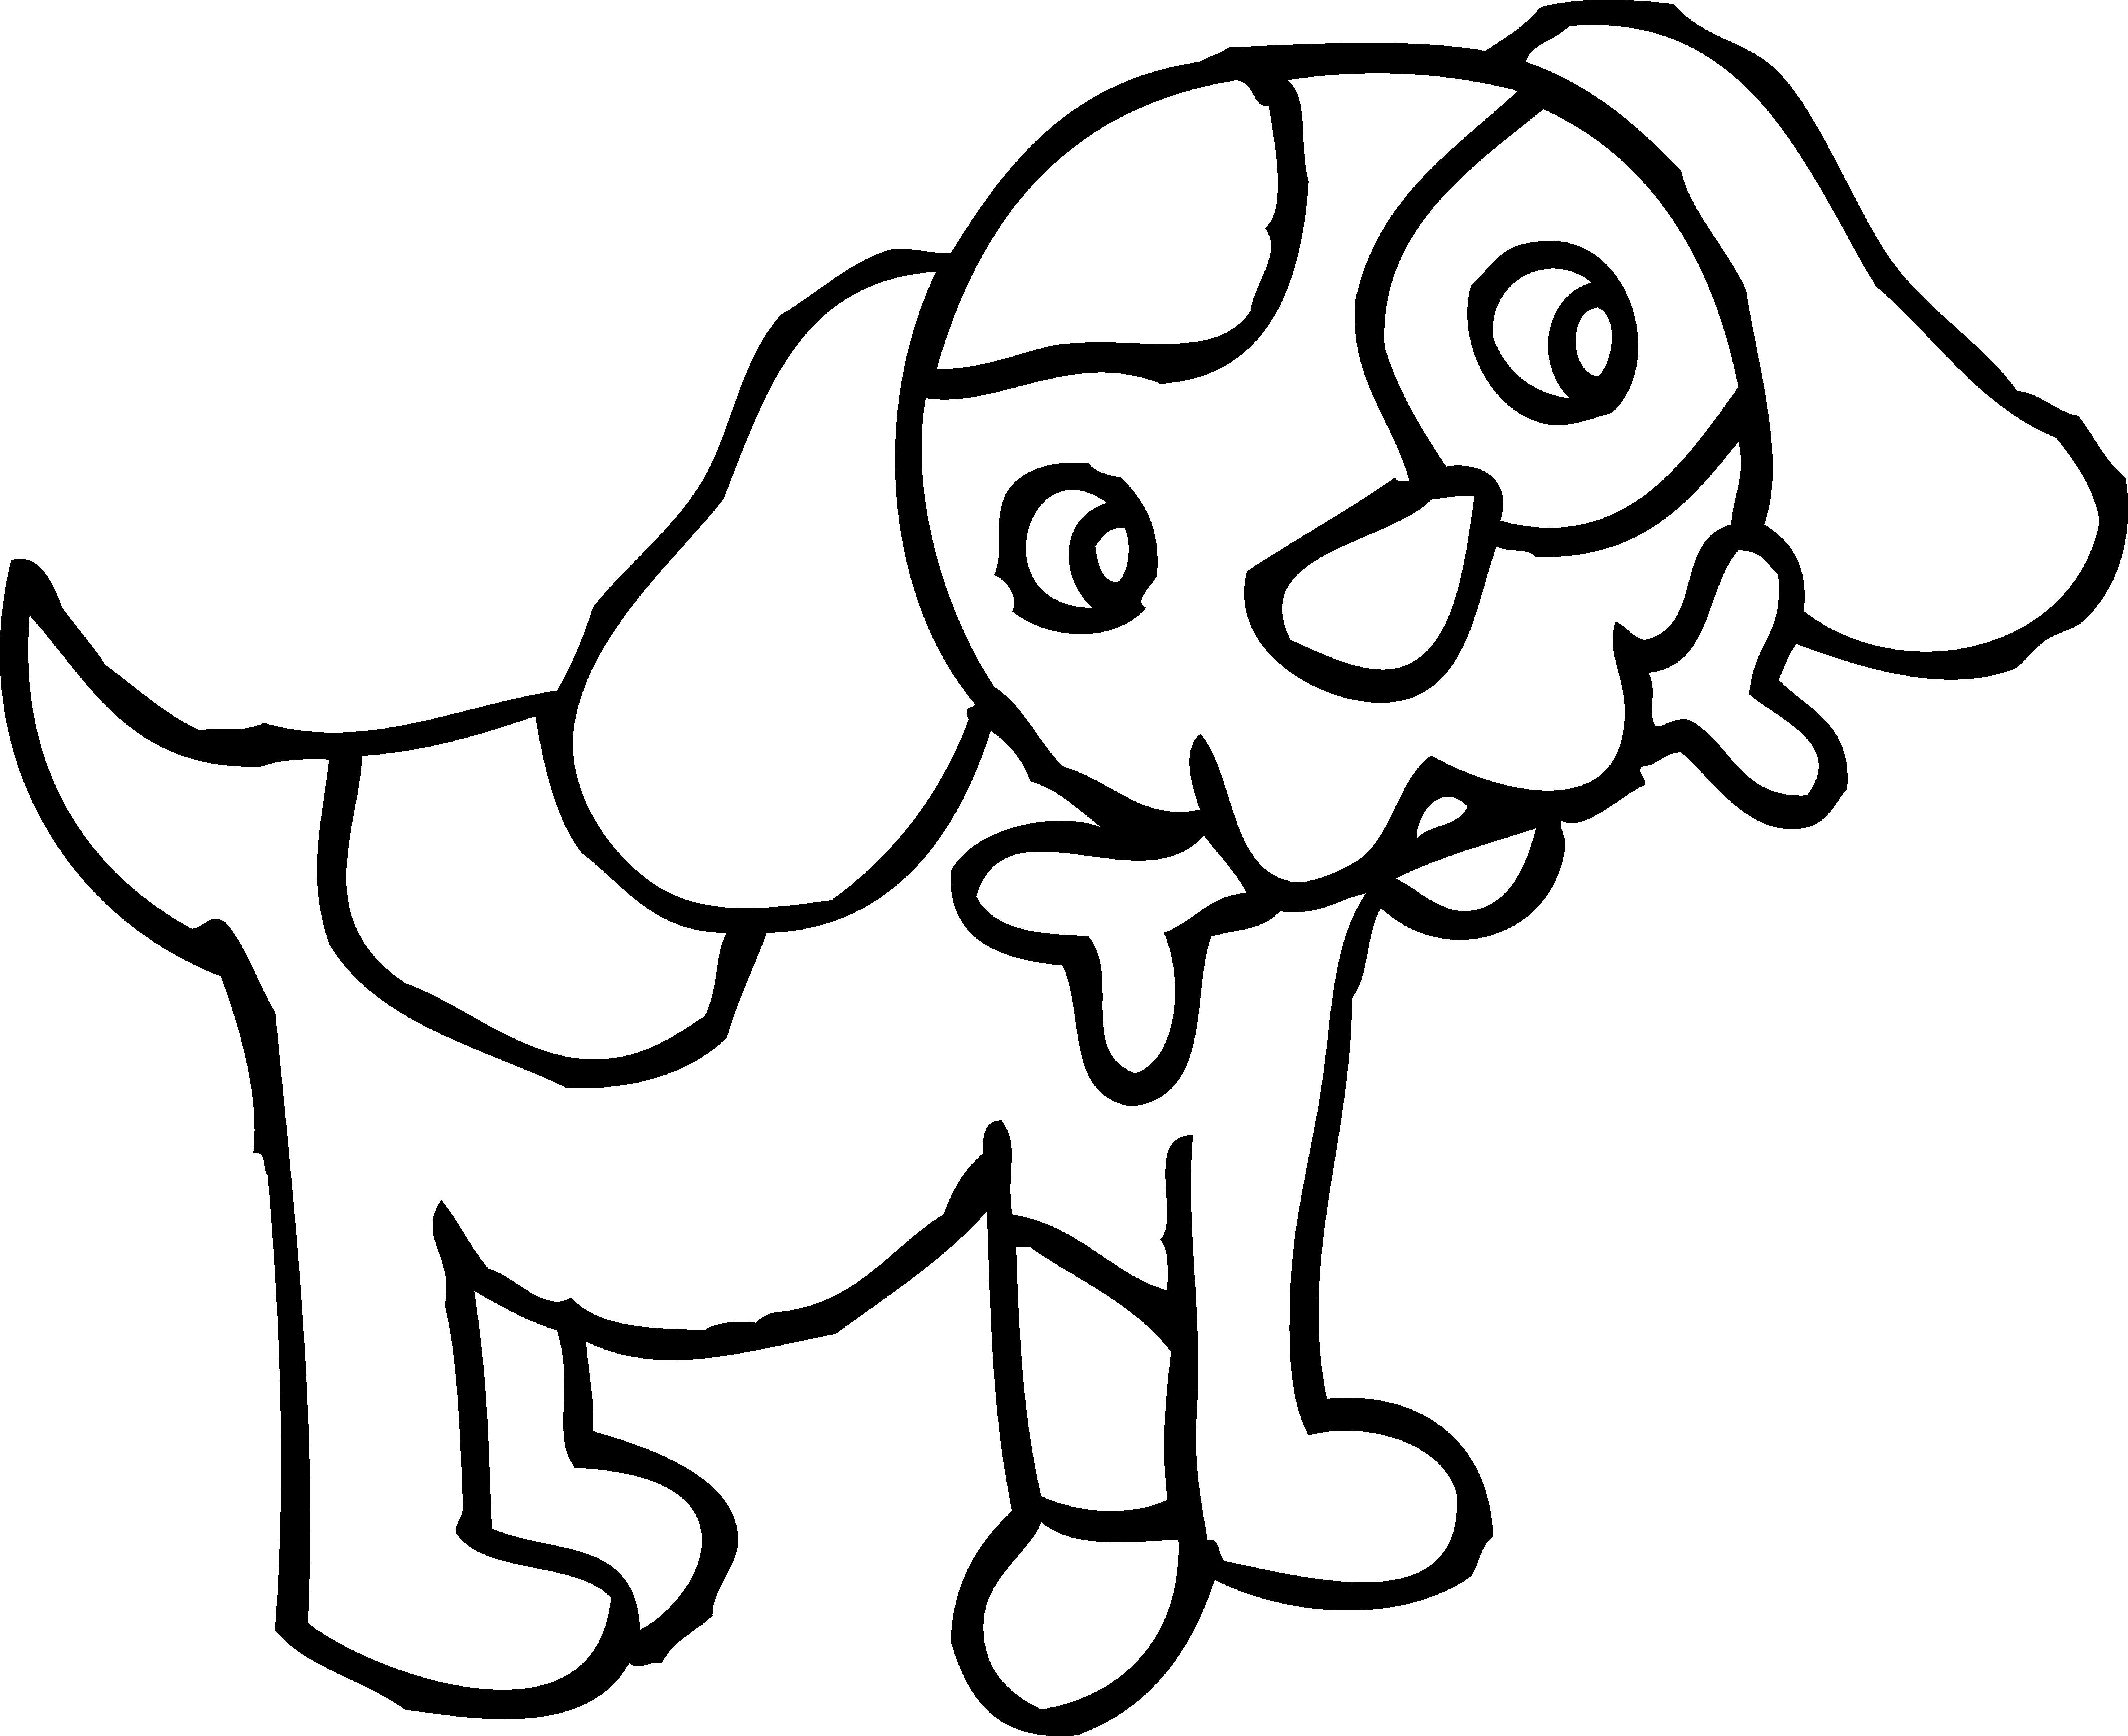 Dog collars free clipart black and white clip art free Free Black And White Dog Clipart, Download Free Clip Art, Free Clip ... clip art free